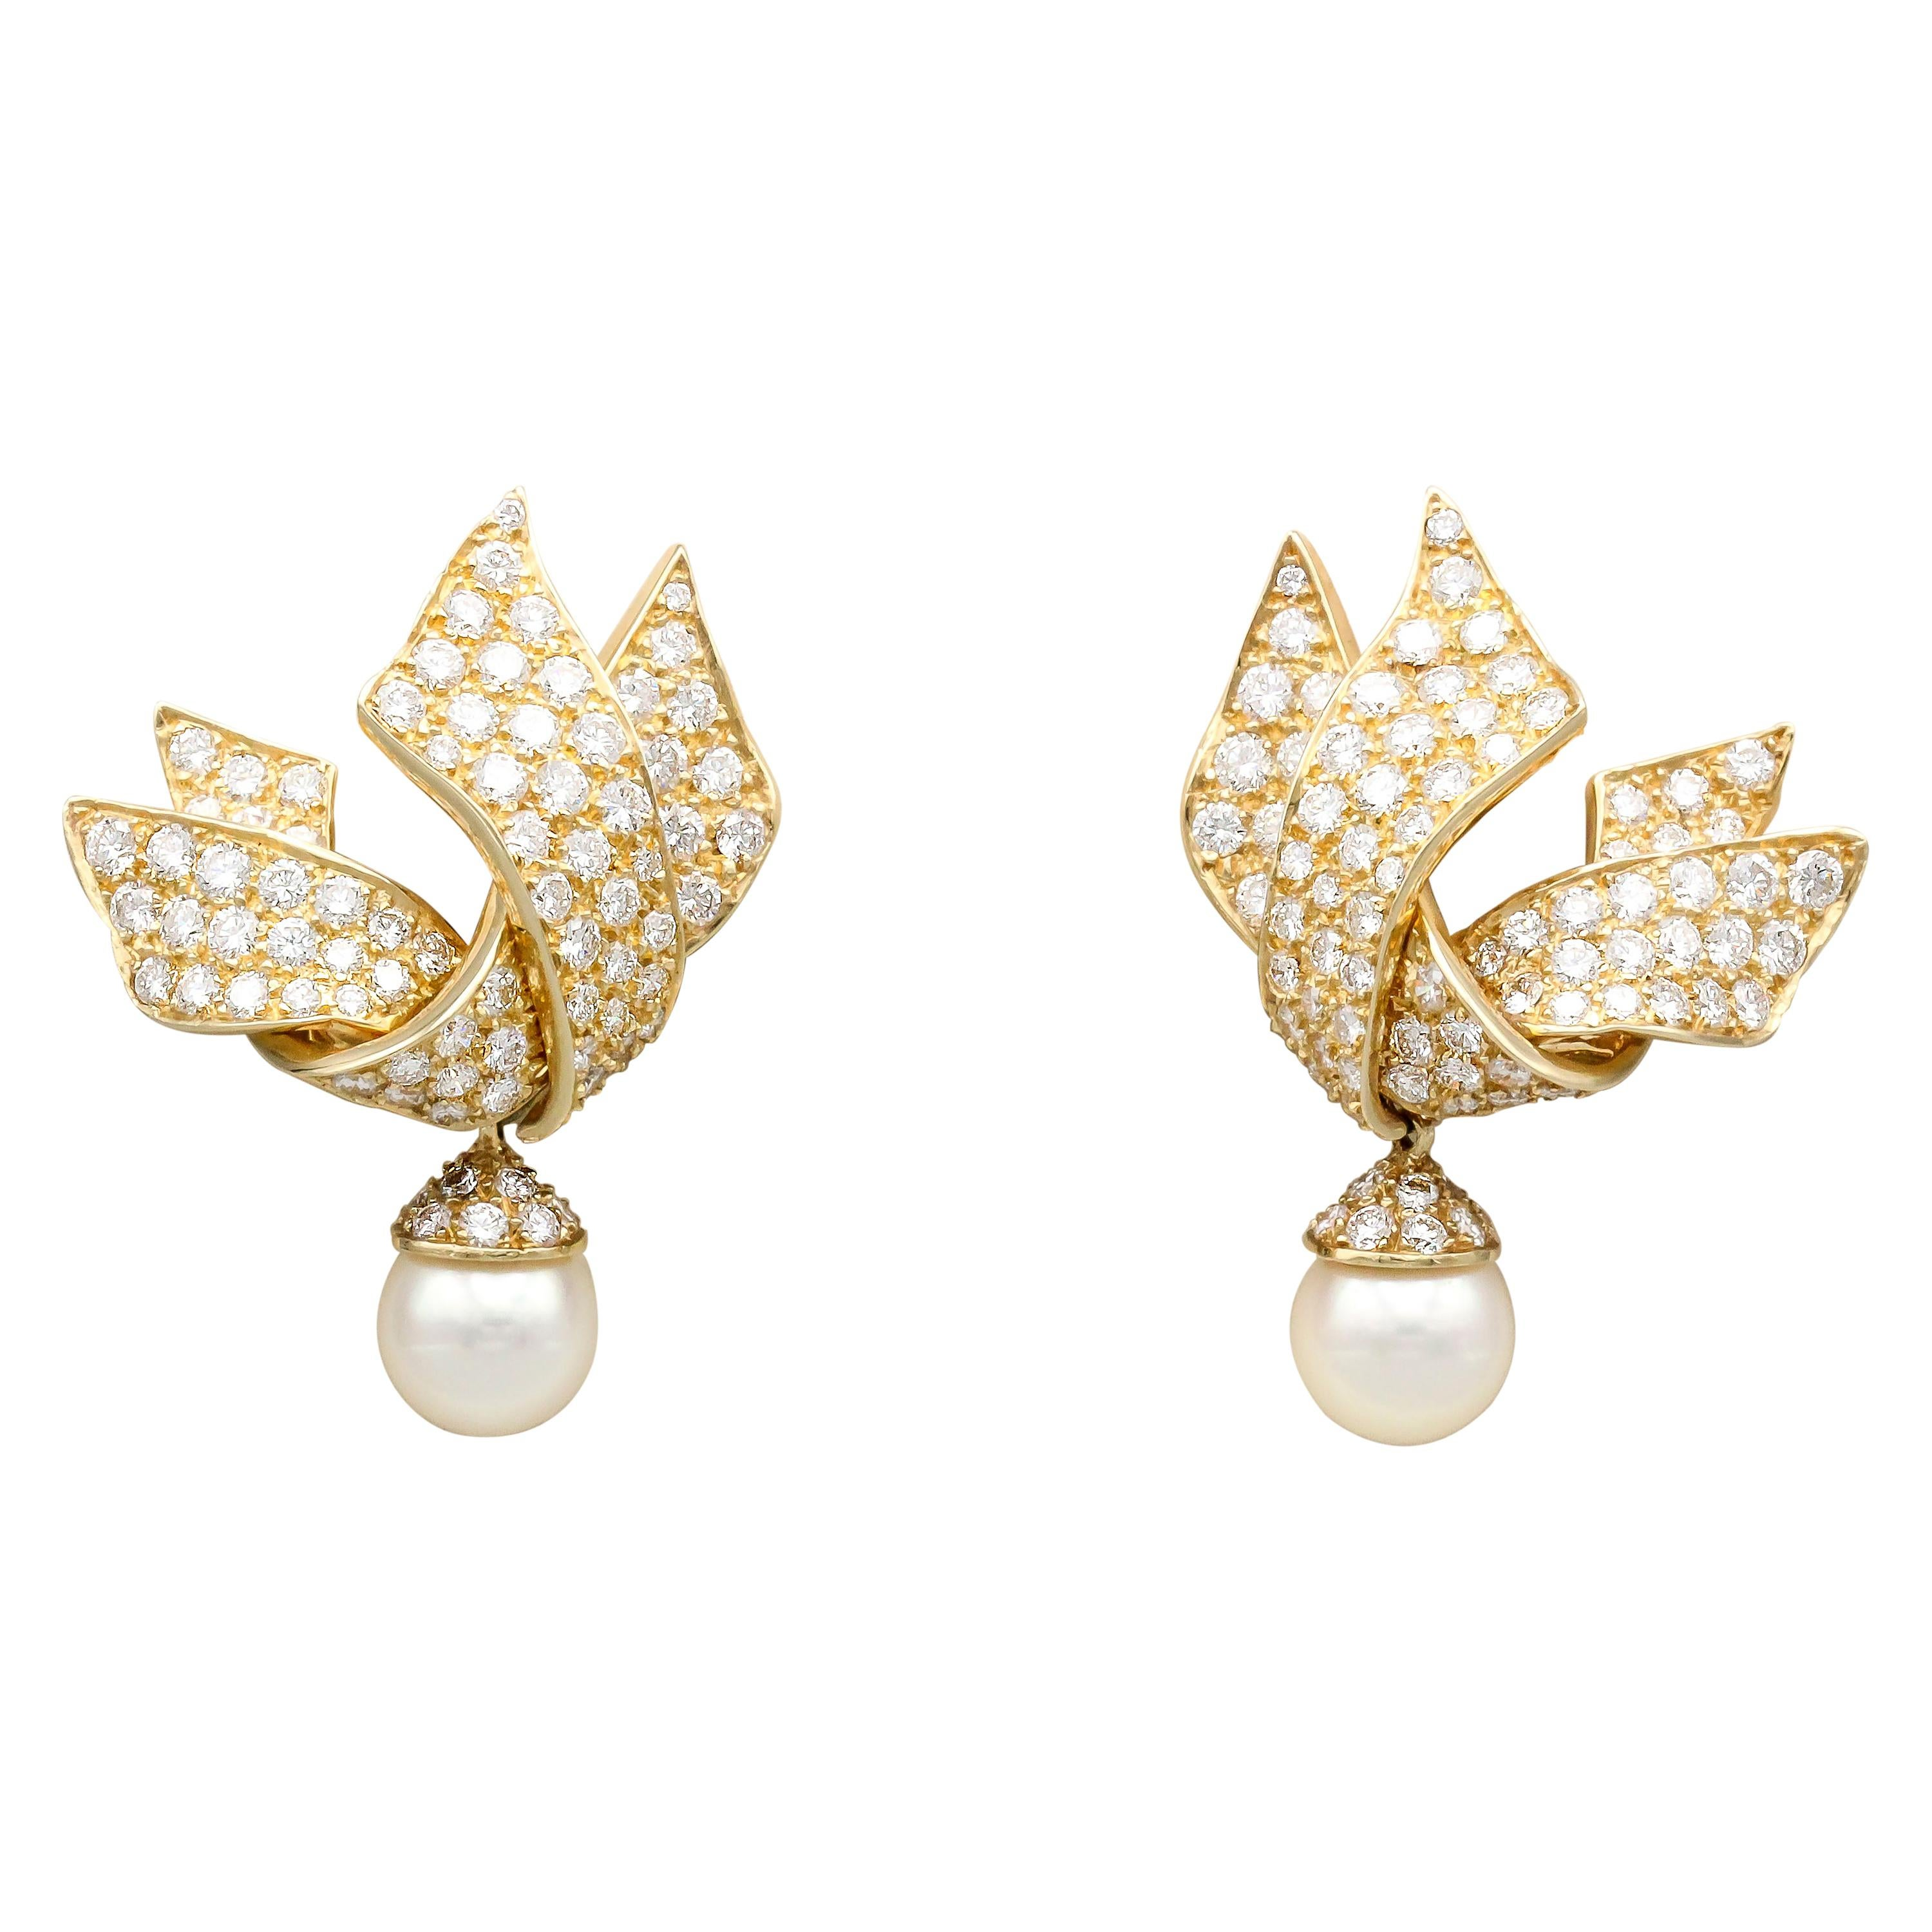 Chanel Diamond Pearl and 18 Karat Gold Day Night Earrings